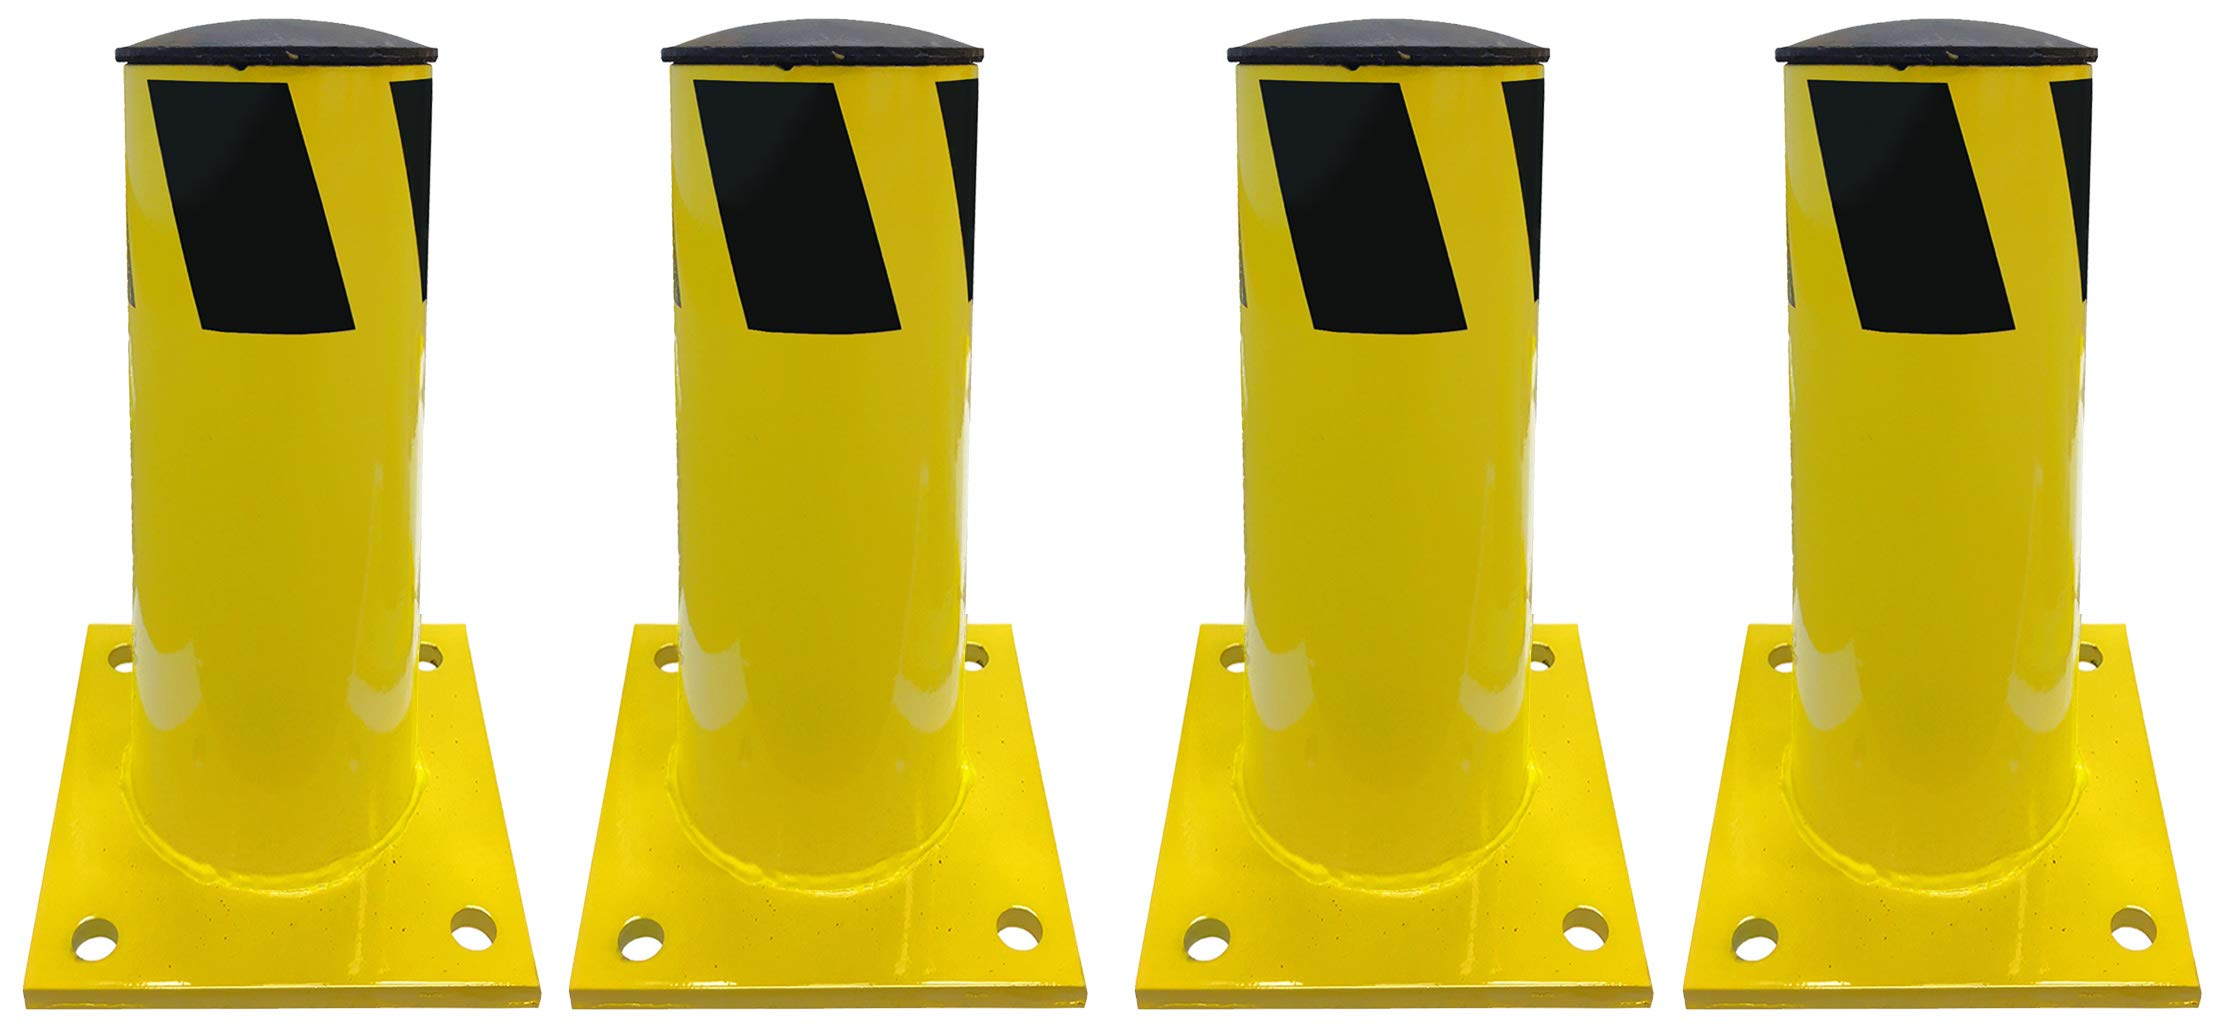 Electriduct 1 Foot Steel Pipe Safety Bollard Post Yellow/Black Stripe - Parking Lot Traffic Barrier (12'' Height - 4.5'' OD) - Pack of 4 by Electriduct (Image #1)